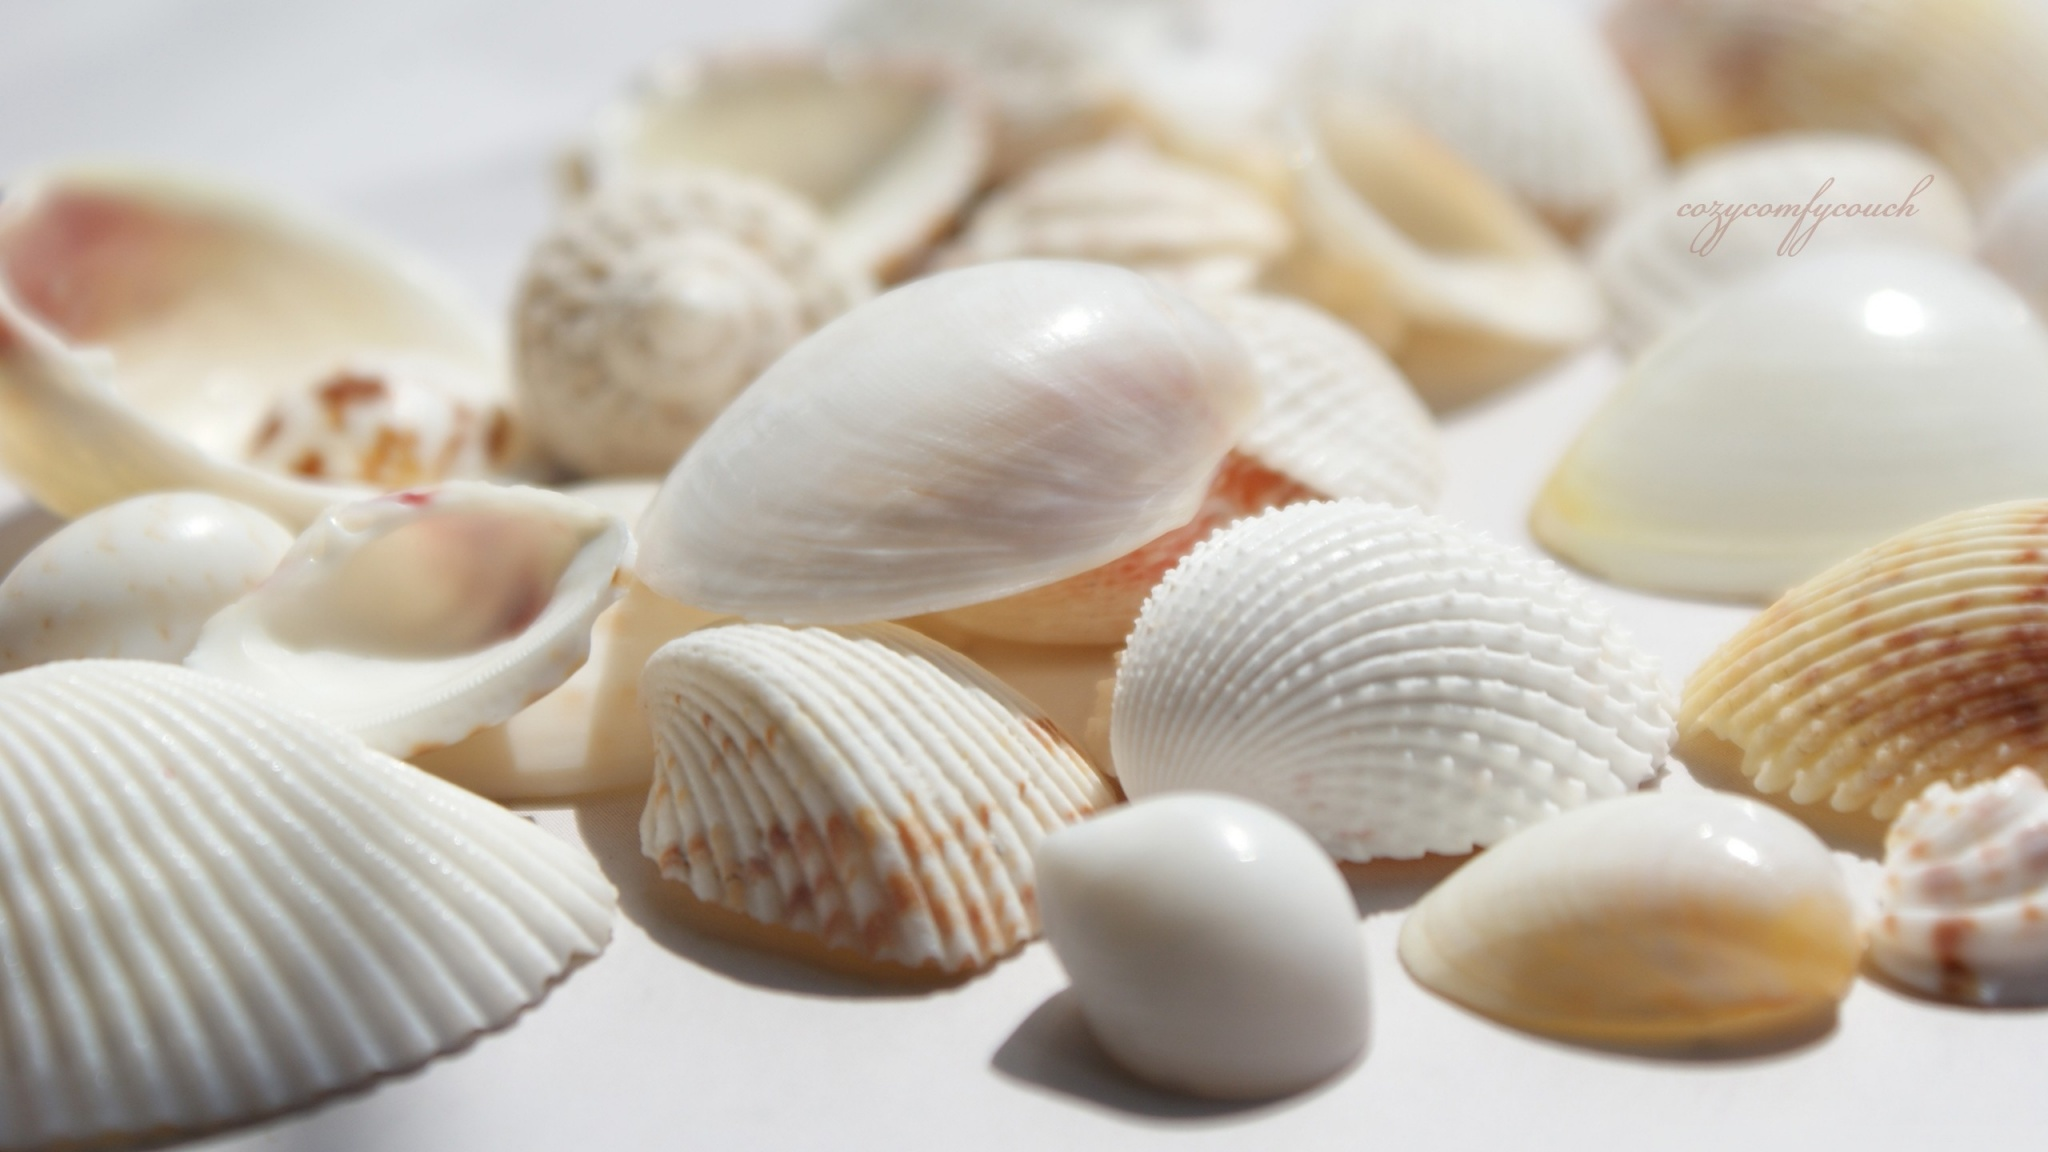 Seashells 4K HD Desktop Wallpaper for 4K Ultra HD TV Dual 2048x1152